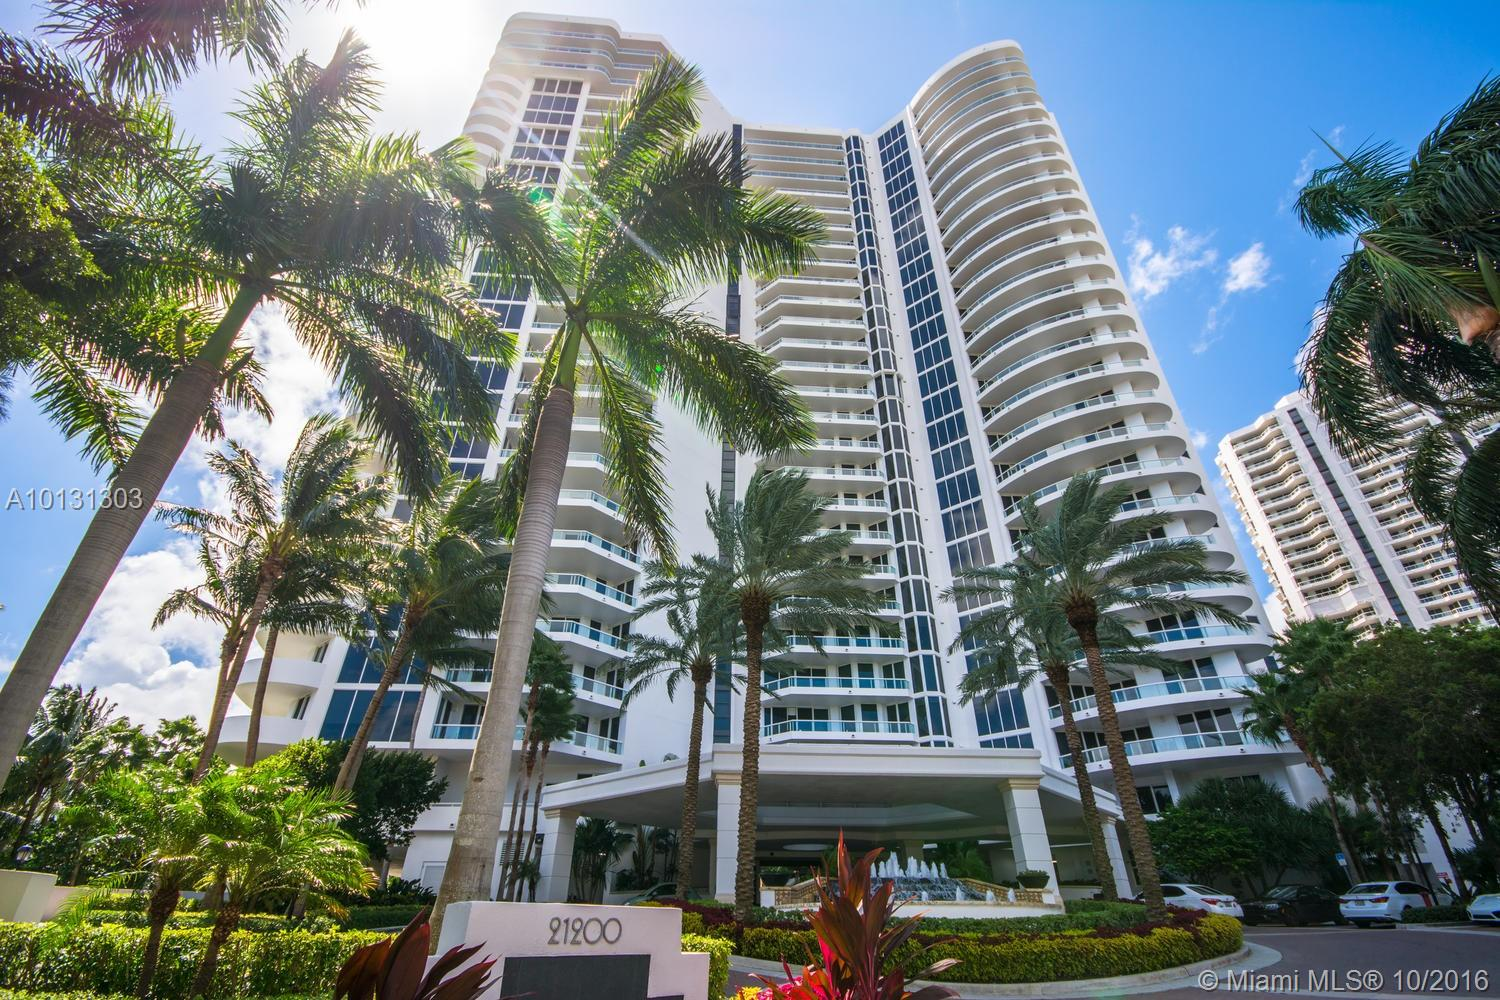 Atlantic I at the Point Aventura